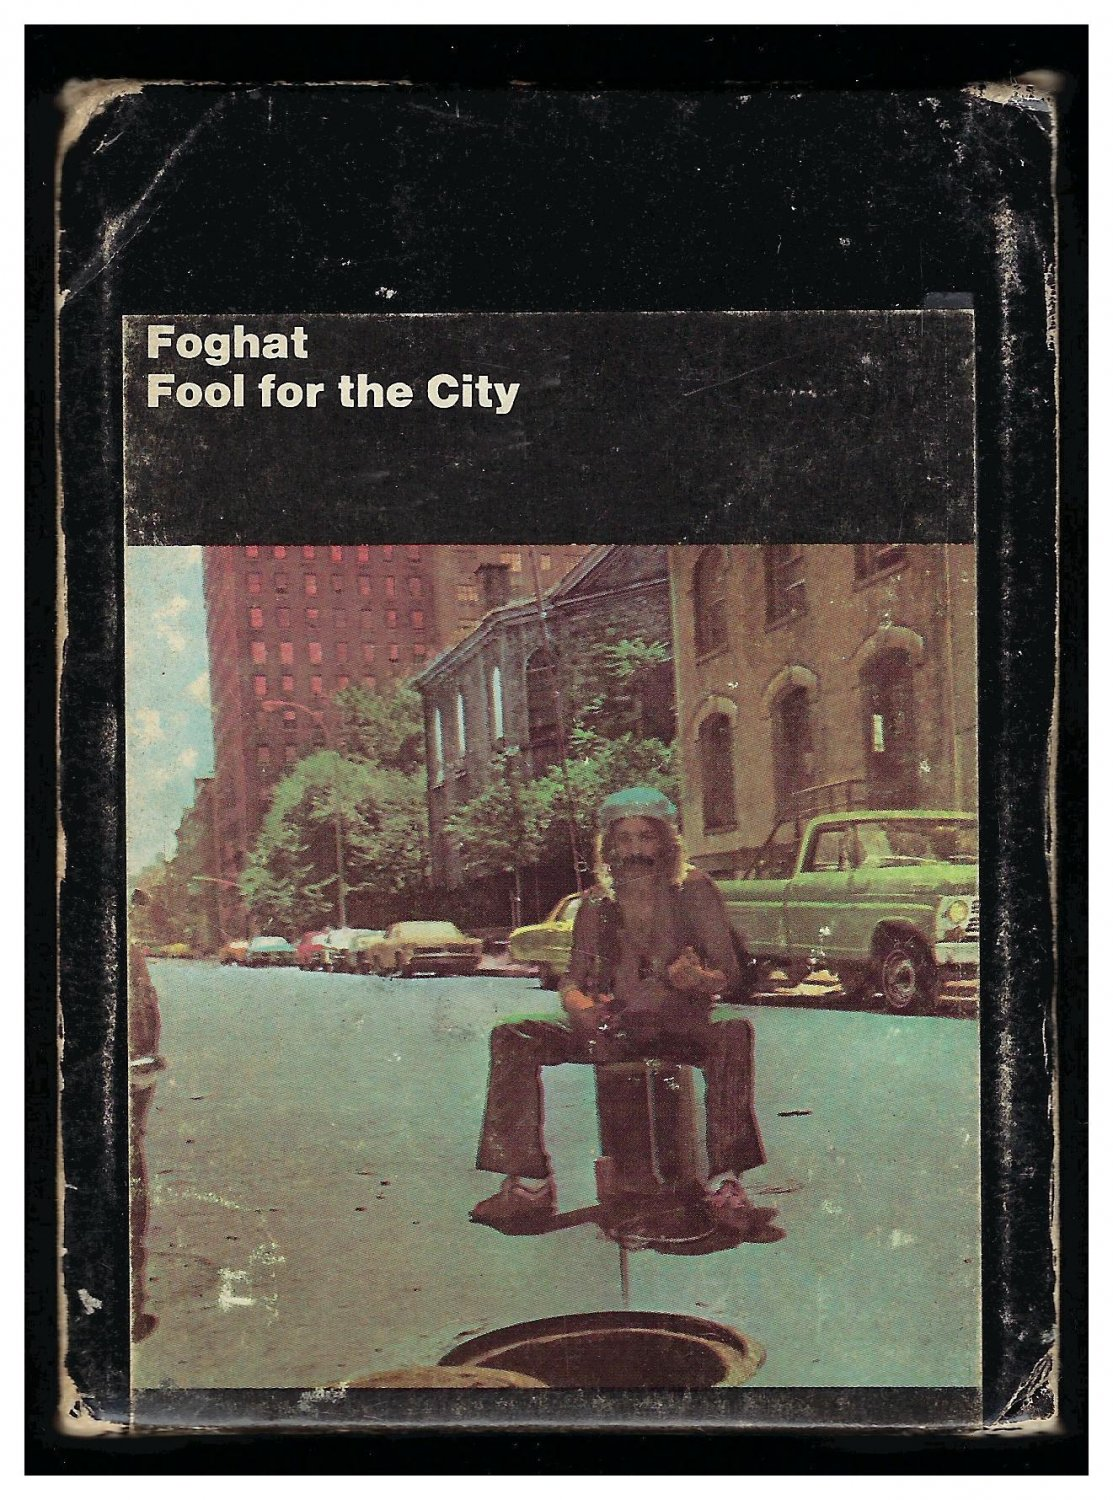 Foghat - Fool For The City 1975 WB A31 8-TRACK TAPE